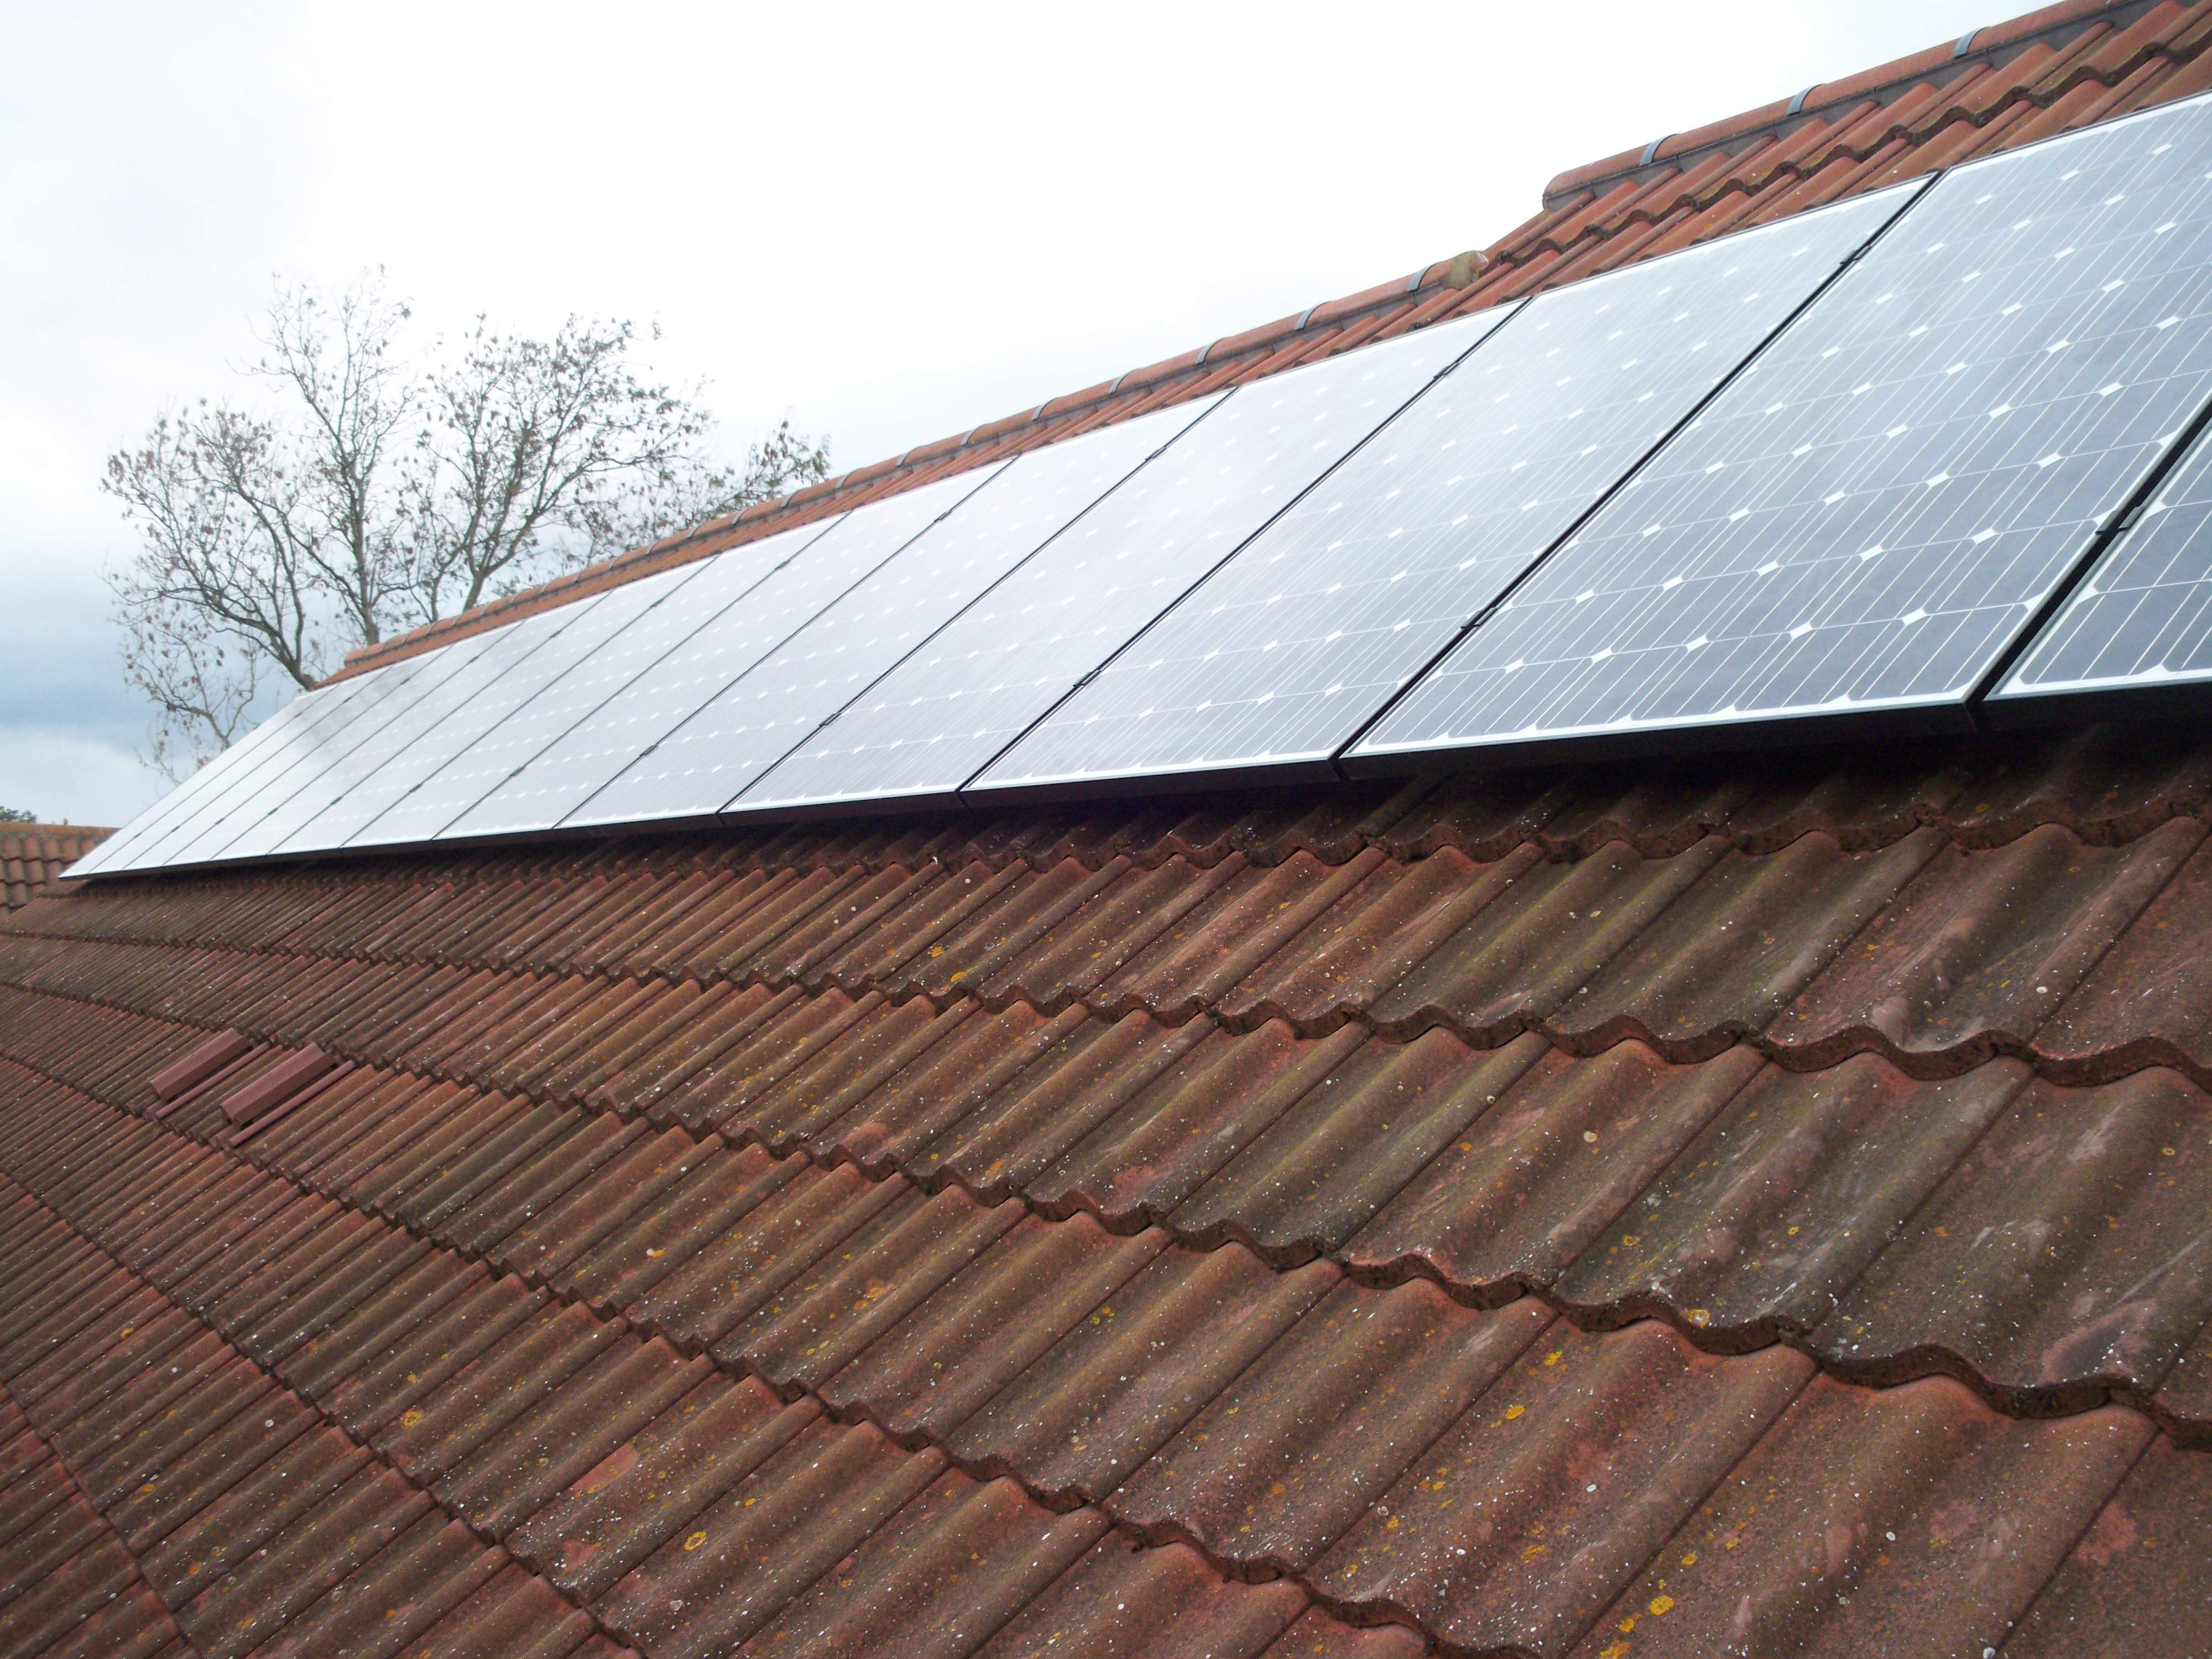 Roof side 1 after installation of solar panels